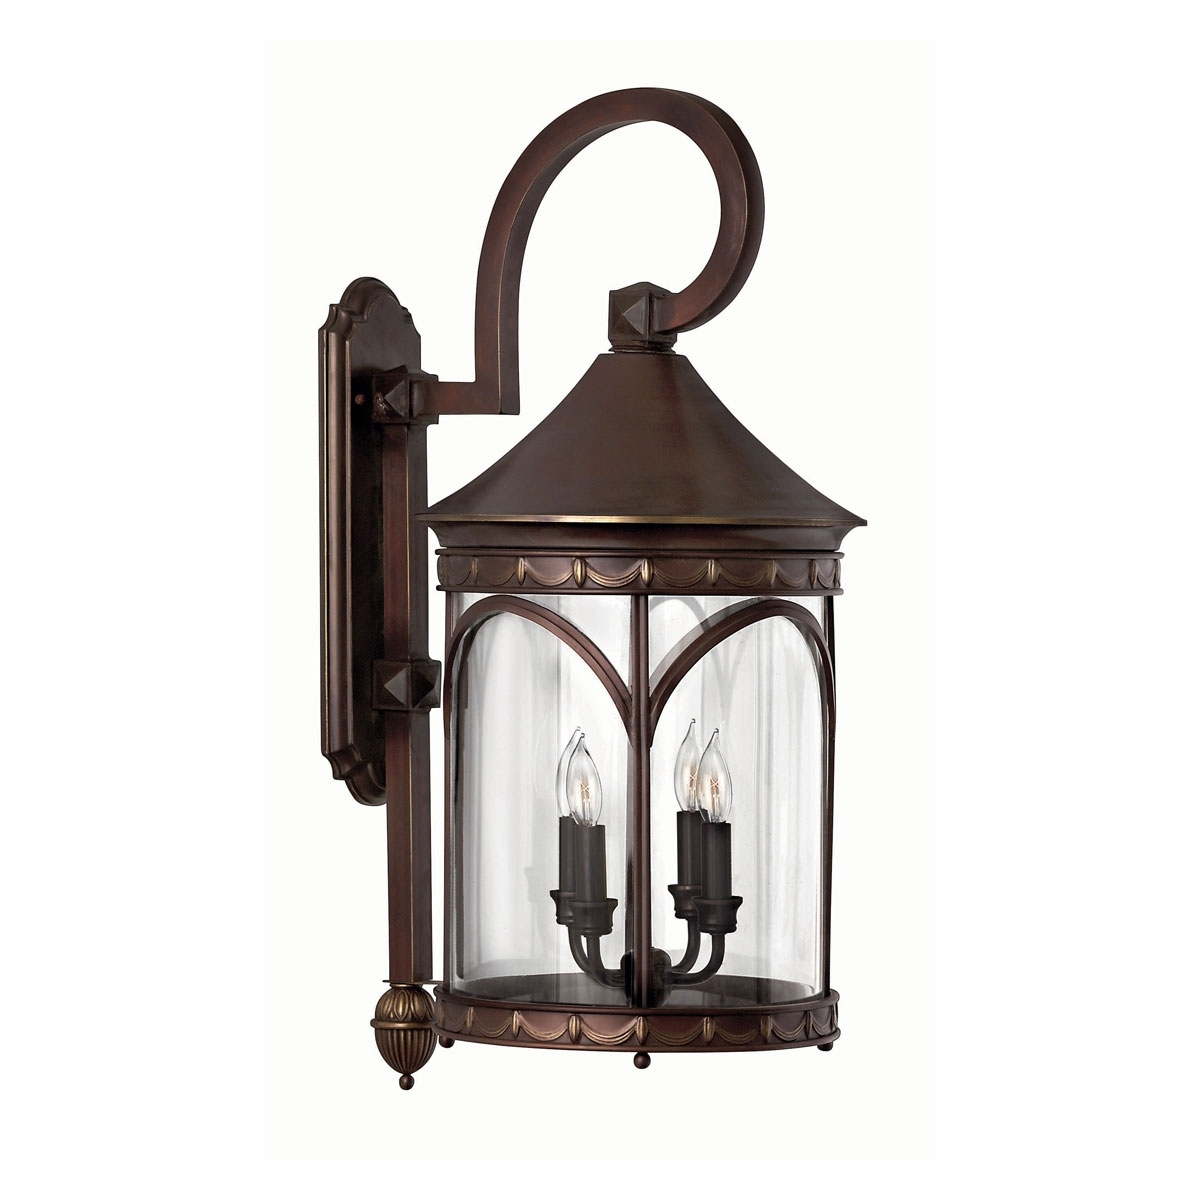 Large Wall Mount Hinkley Lighting Regarding Most Popular 2315Cb – Large Wall Outdoor Light, 30 Inch, Lucerne Copper Bronze (View 10 of 20)